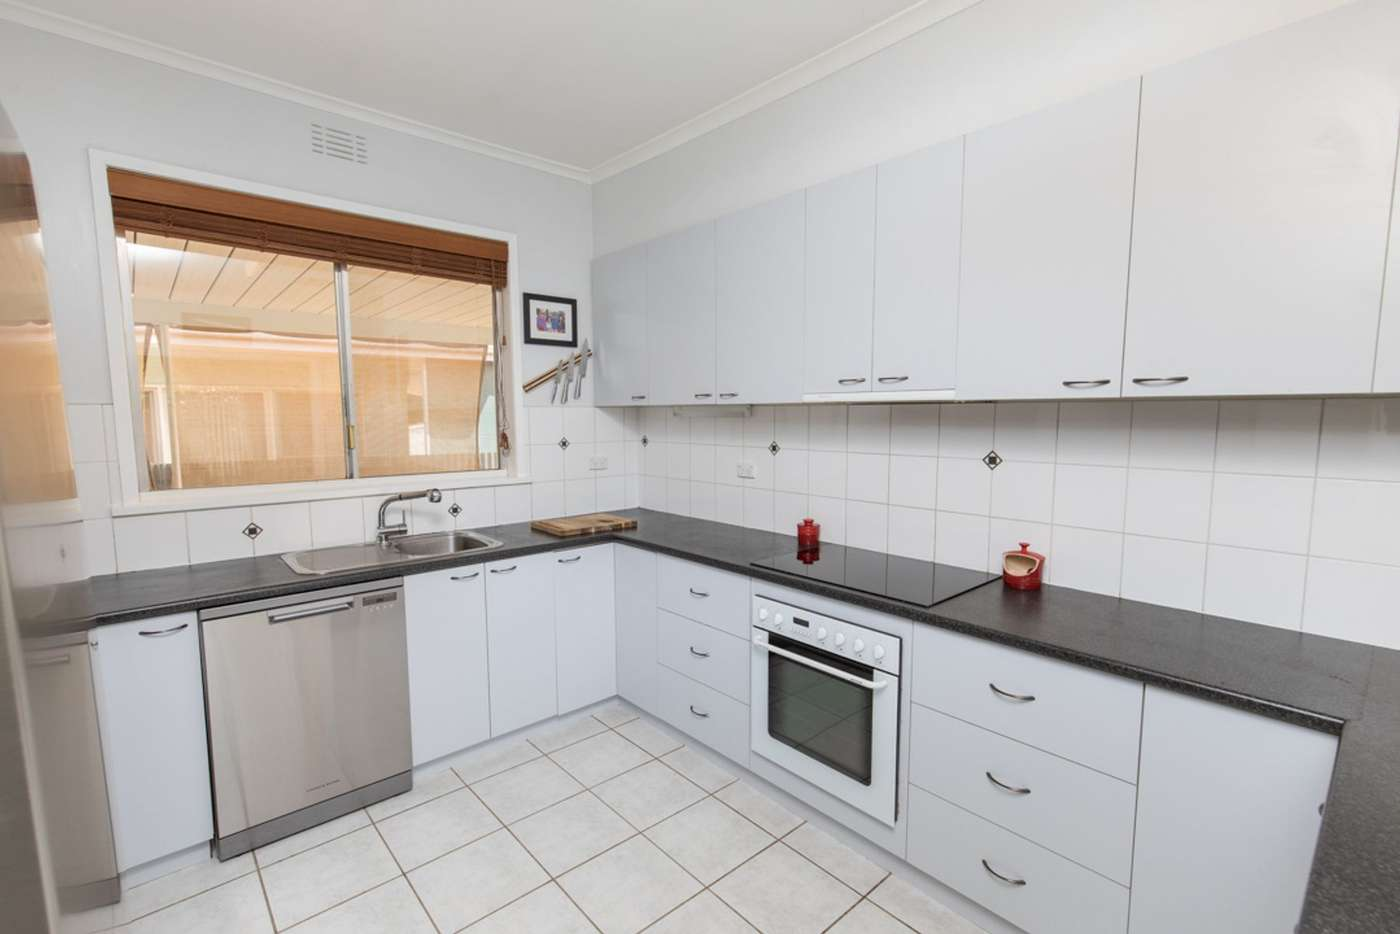 Sixth view of Homely house listing, 25 McKendrick Avenue, Mildura VIC 3500